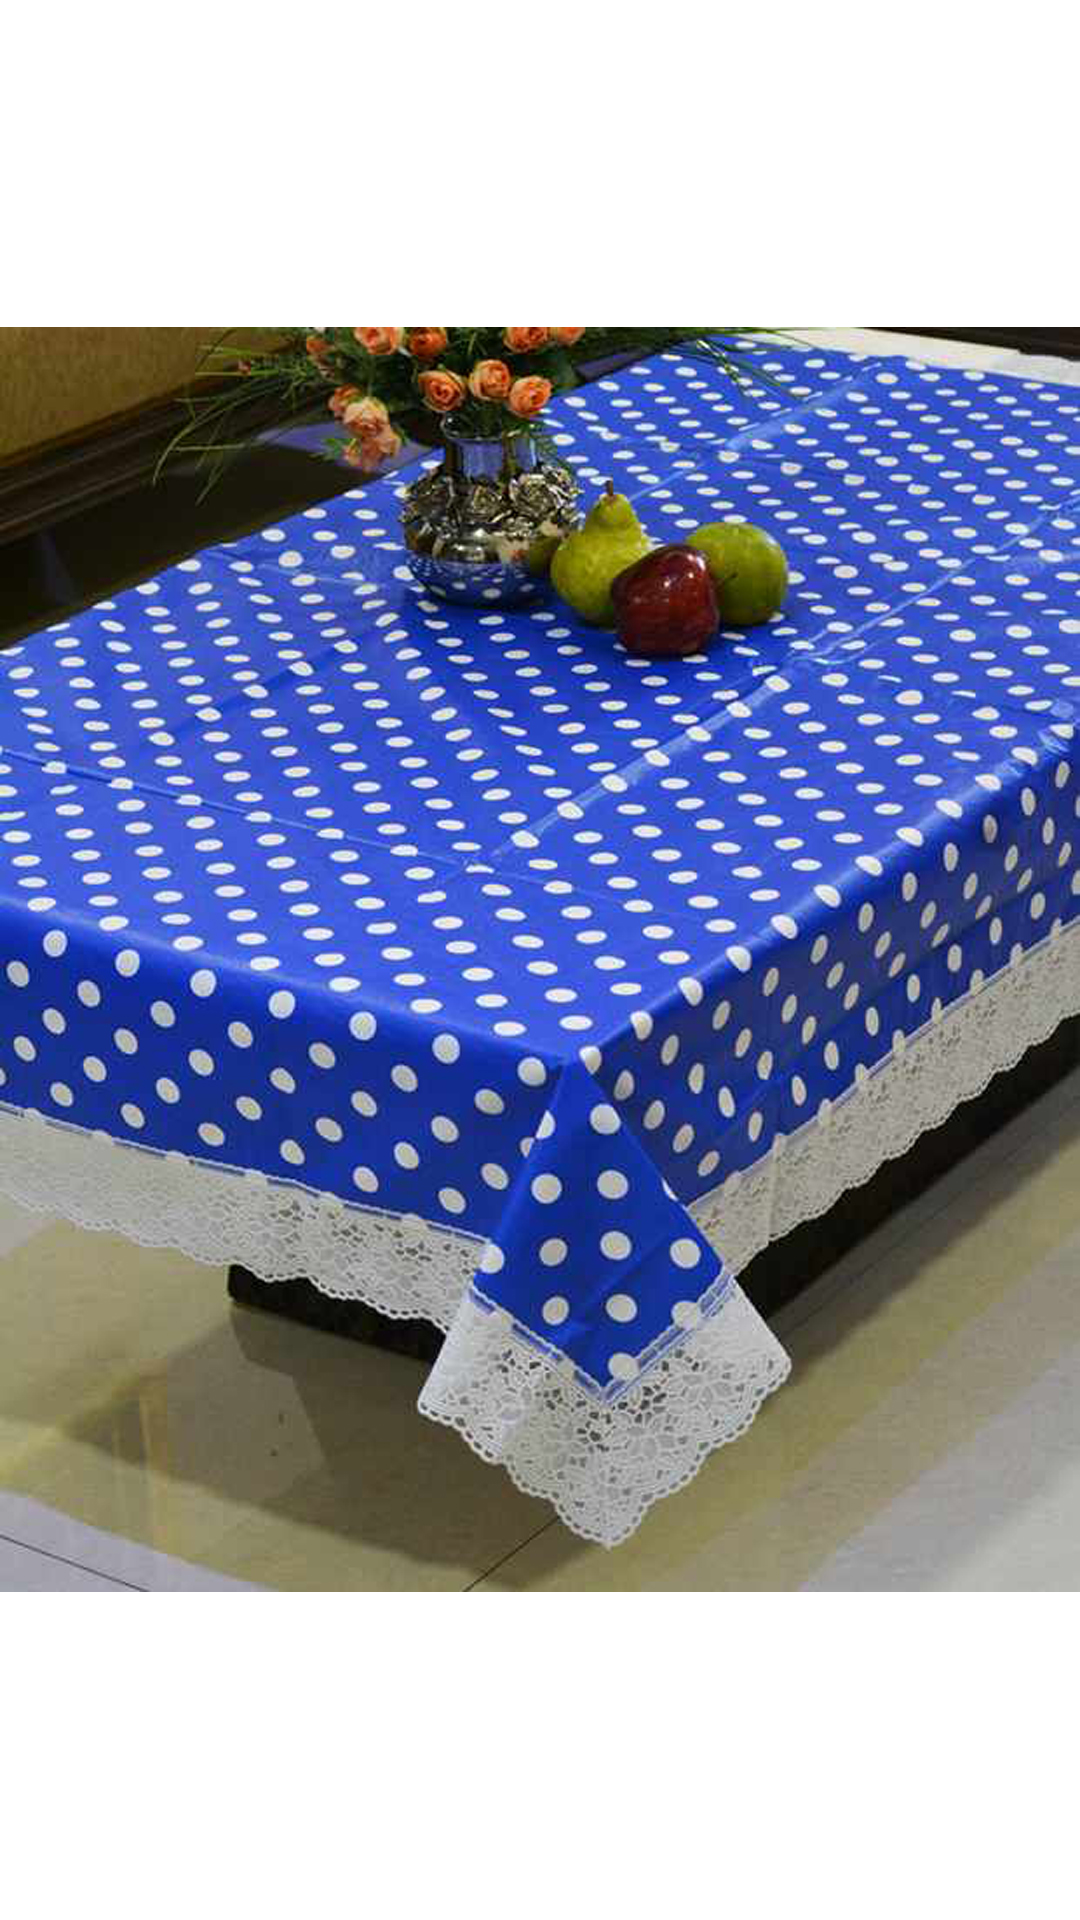 Buy Freely Dining Round Printed Table Covers For 4 Seater  : 0 from paytm.com size 320 x 569 jpeg 31kB